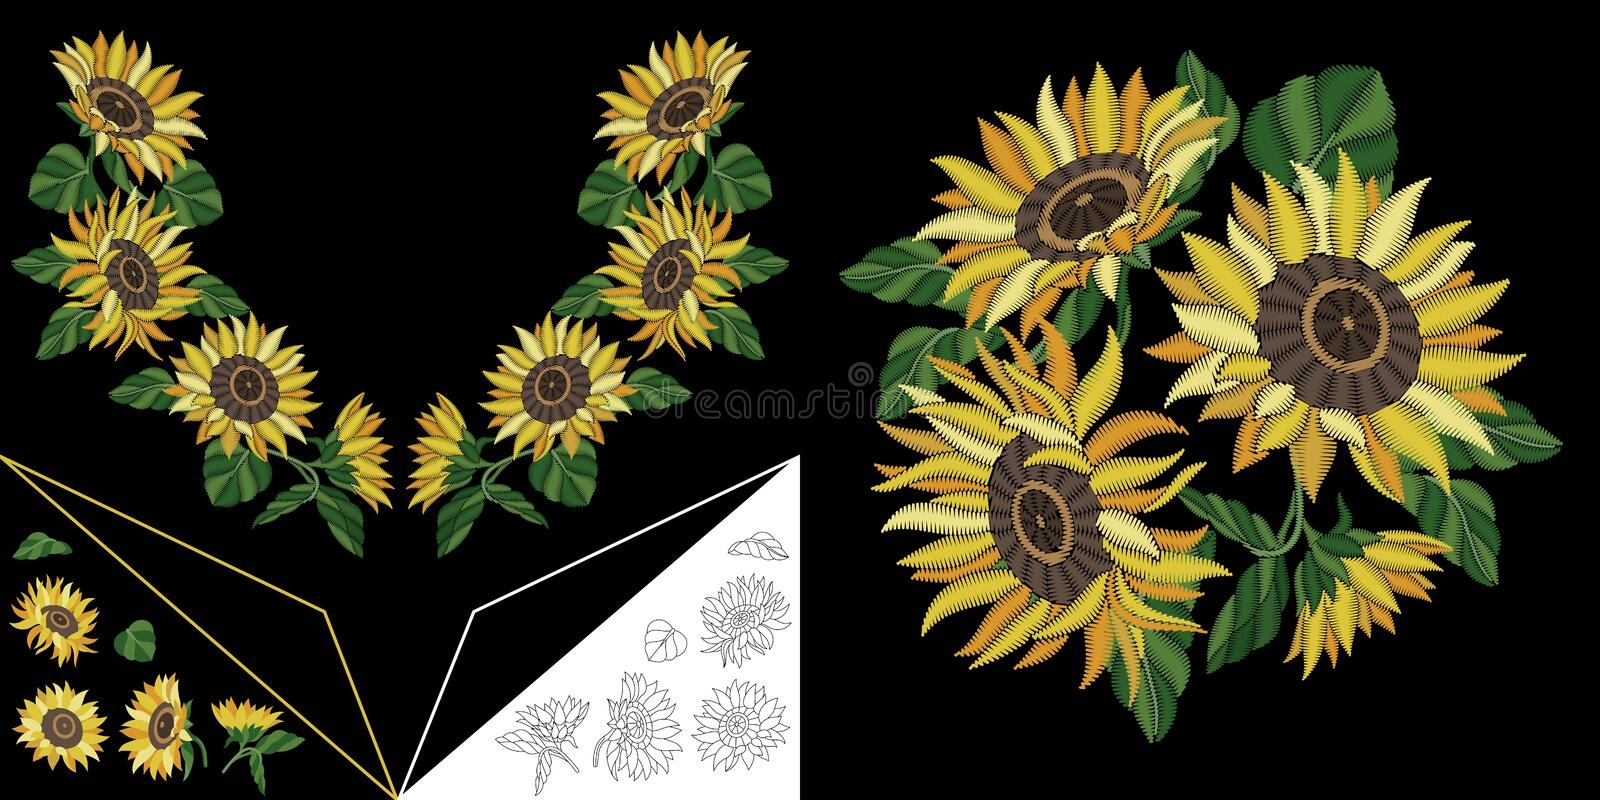 Embroidery floral neckline design stock images